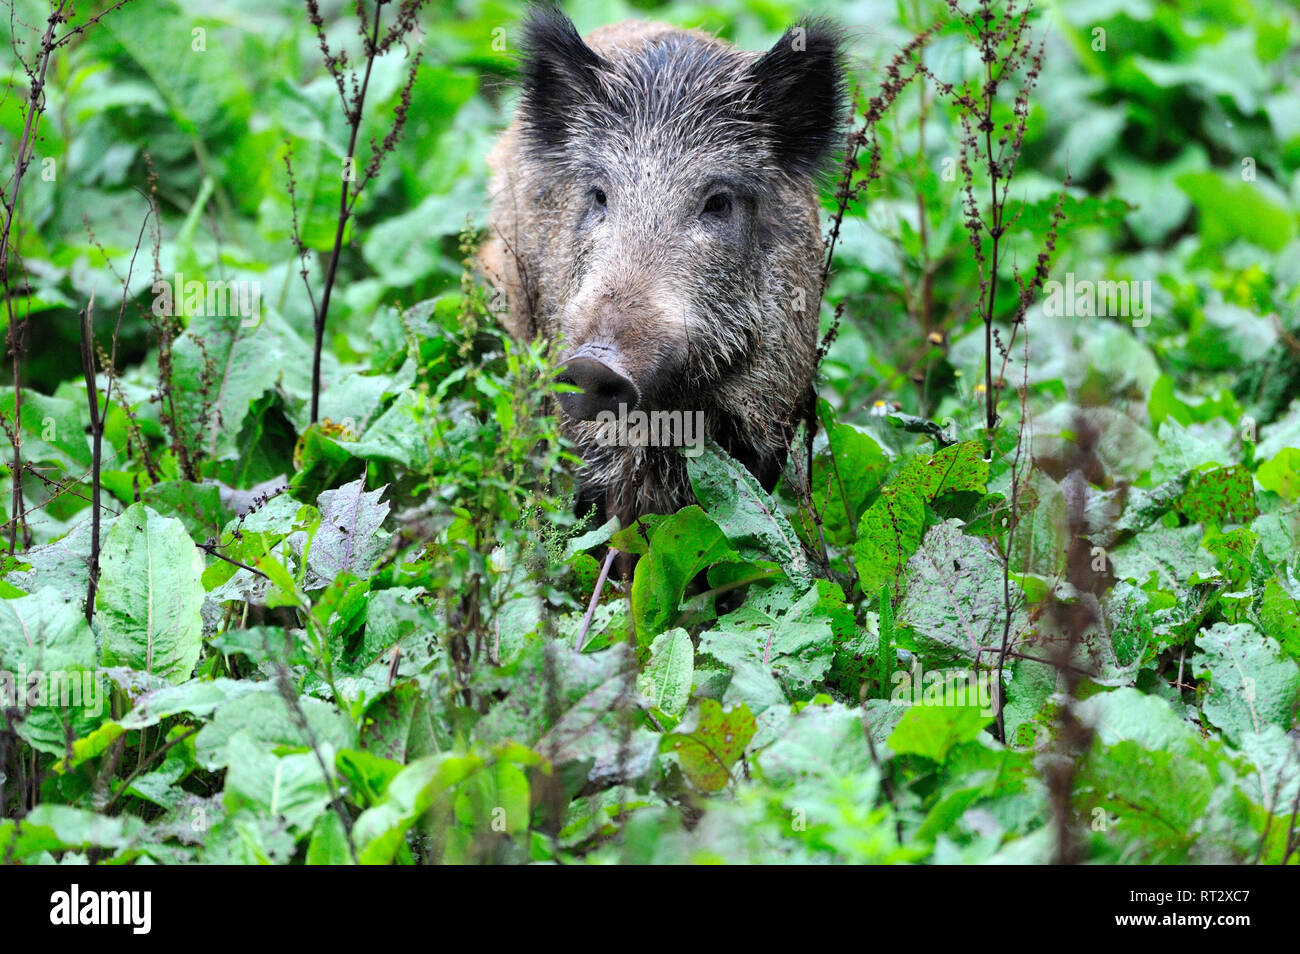 Pigs, real pigs, cloven-hoofed animals, sow, making a mess, black smock, black game, pig, pigs, Suckel, Sus scrofa scrofa, mammals, wild boar, wild bo - Stock Image